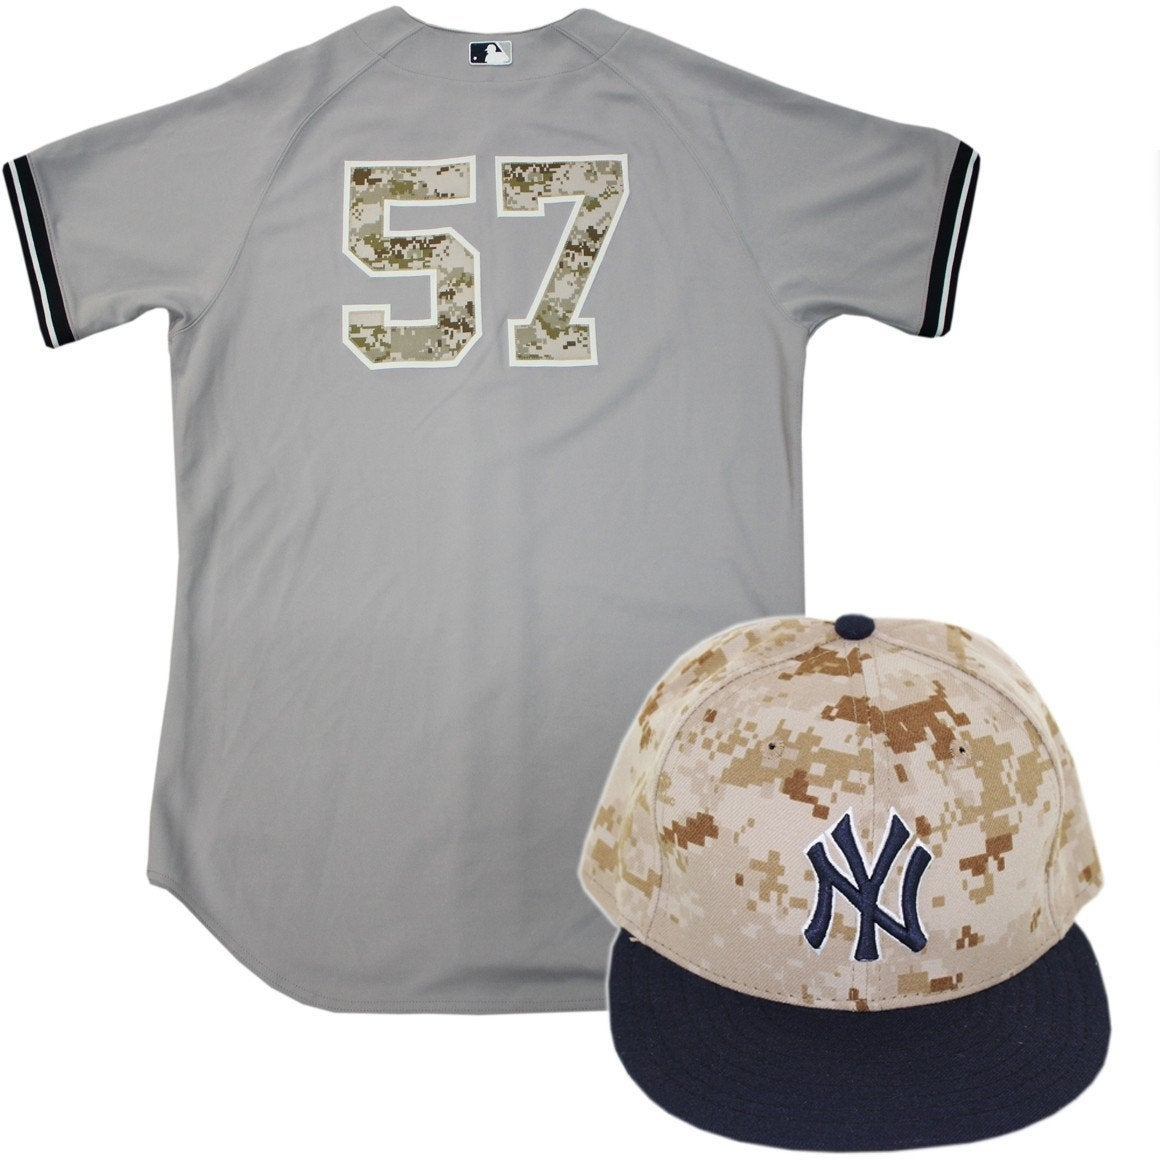 Shop Vidal Nuno Set NY Yankees Memorial Day 2014 Game Used Jersey and Hat  Set - Free Shipping Today - Overstock - 20258729 b3169b33e91